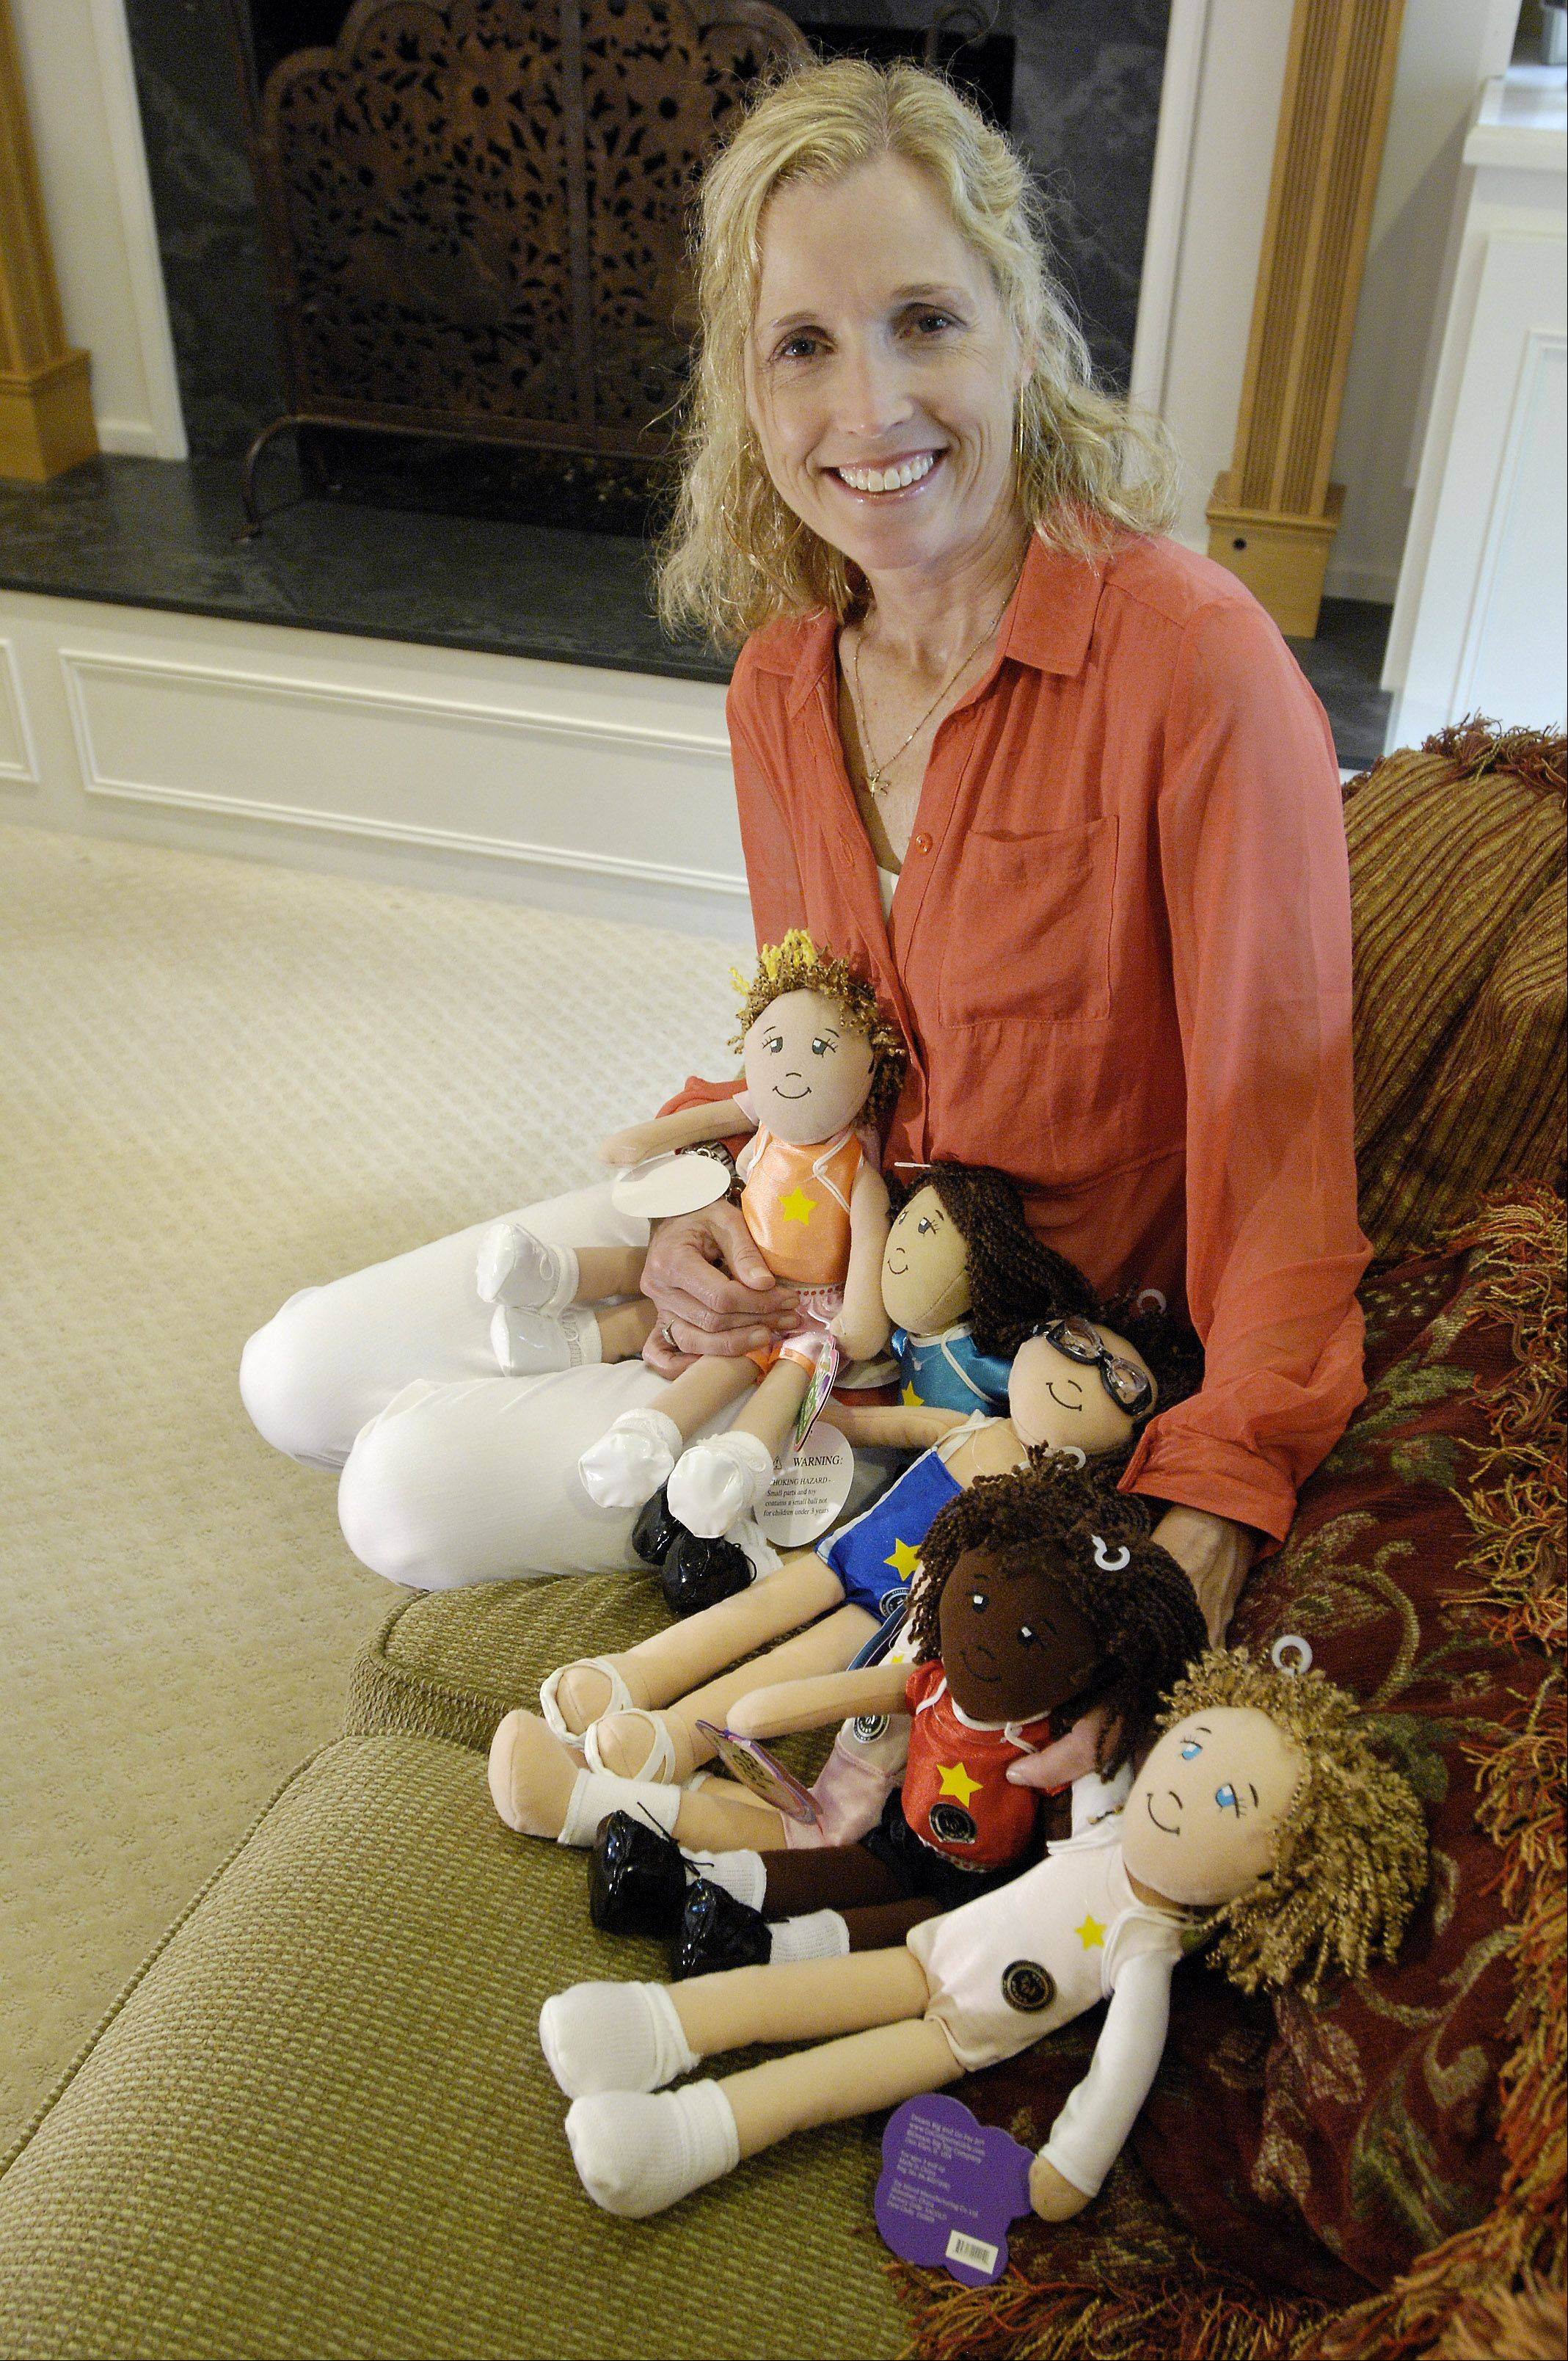 Jodi Norgaard of Glen Ellyn is the creator of sports themed plush dolls called Go! Go! Sports Girls that are intended to promote a healthy self-image for girls.